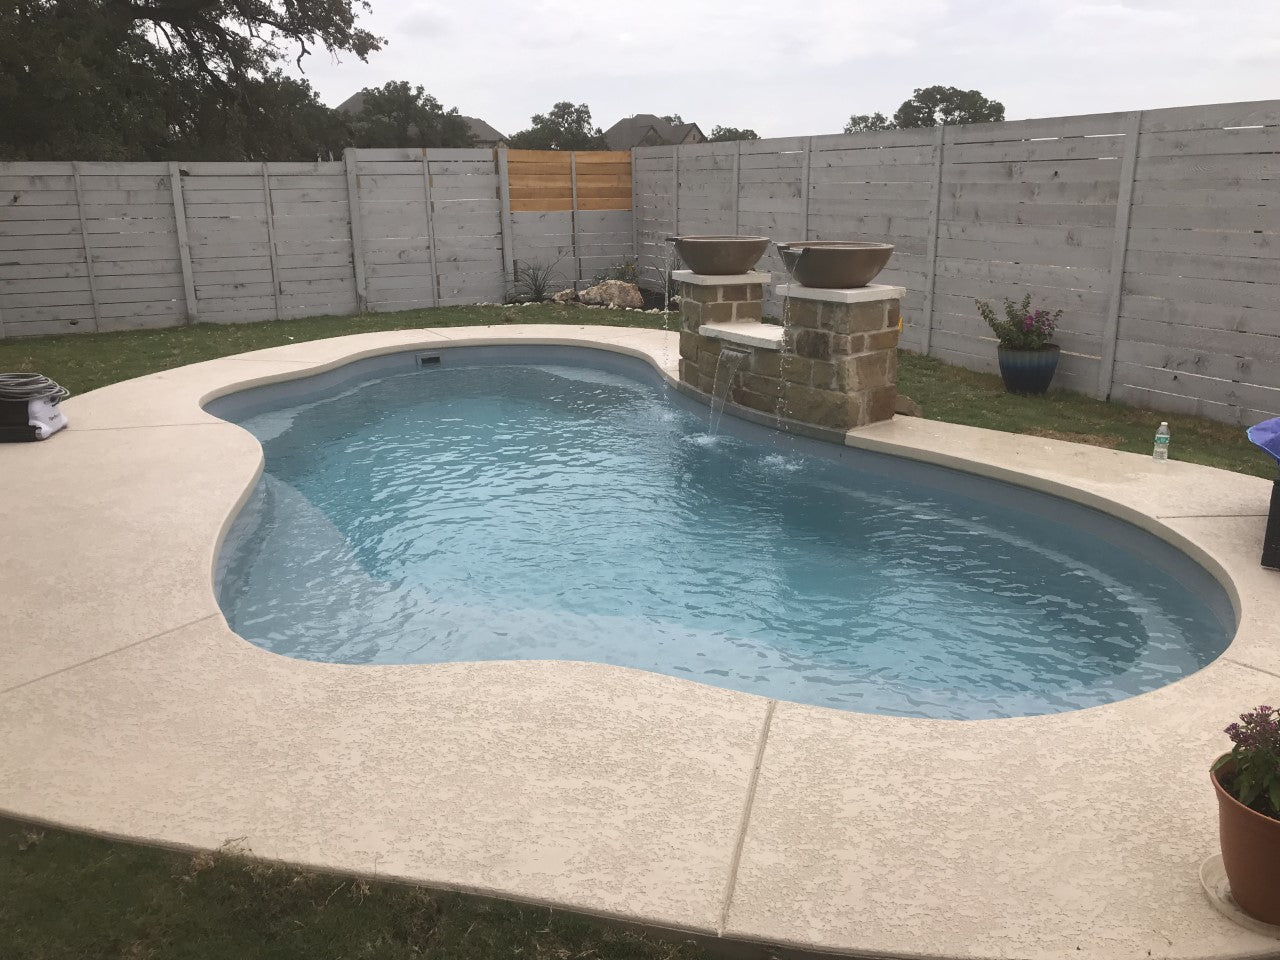 Concrete Pool coping from Blueprint Builder example 1